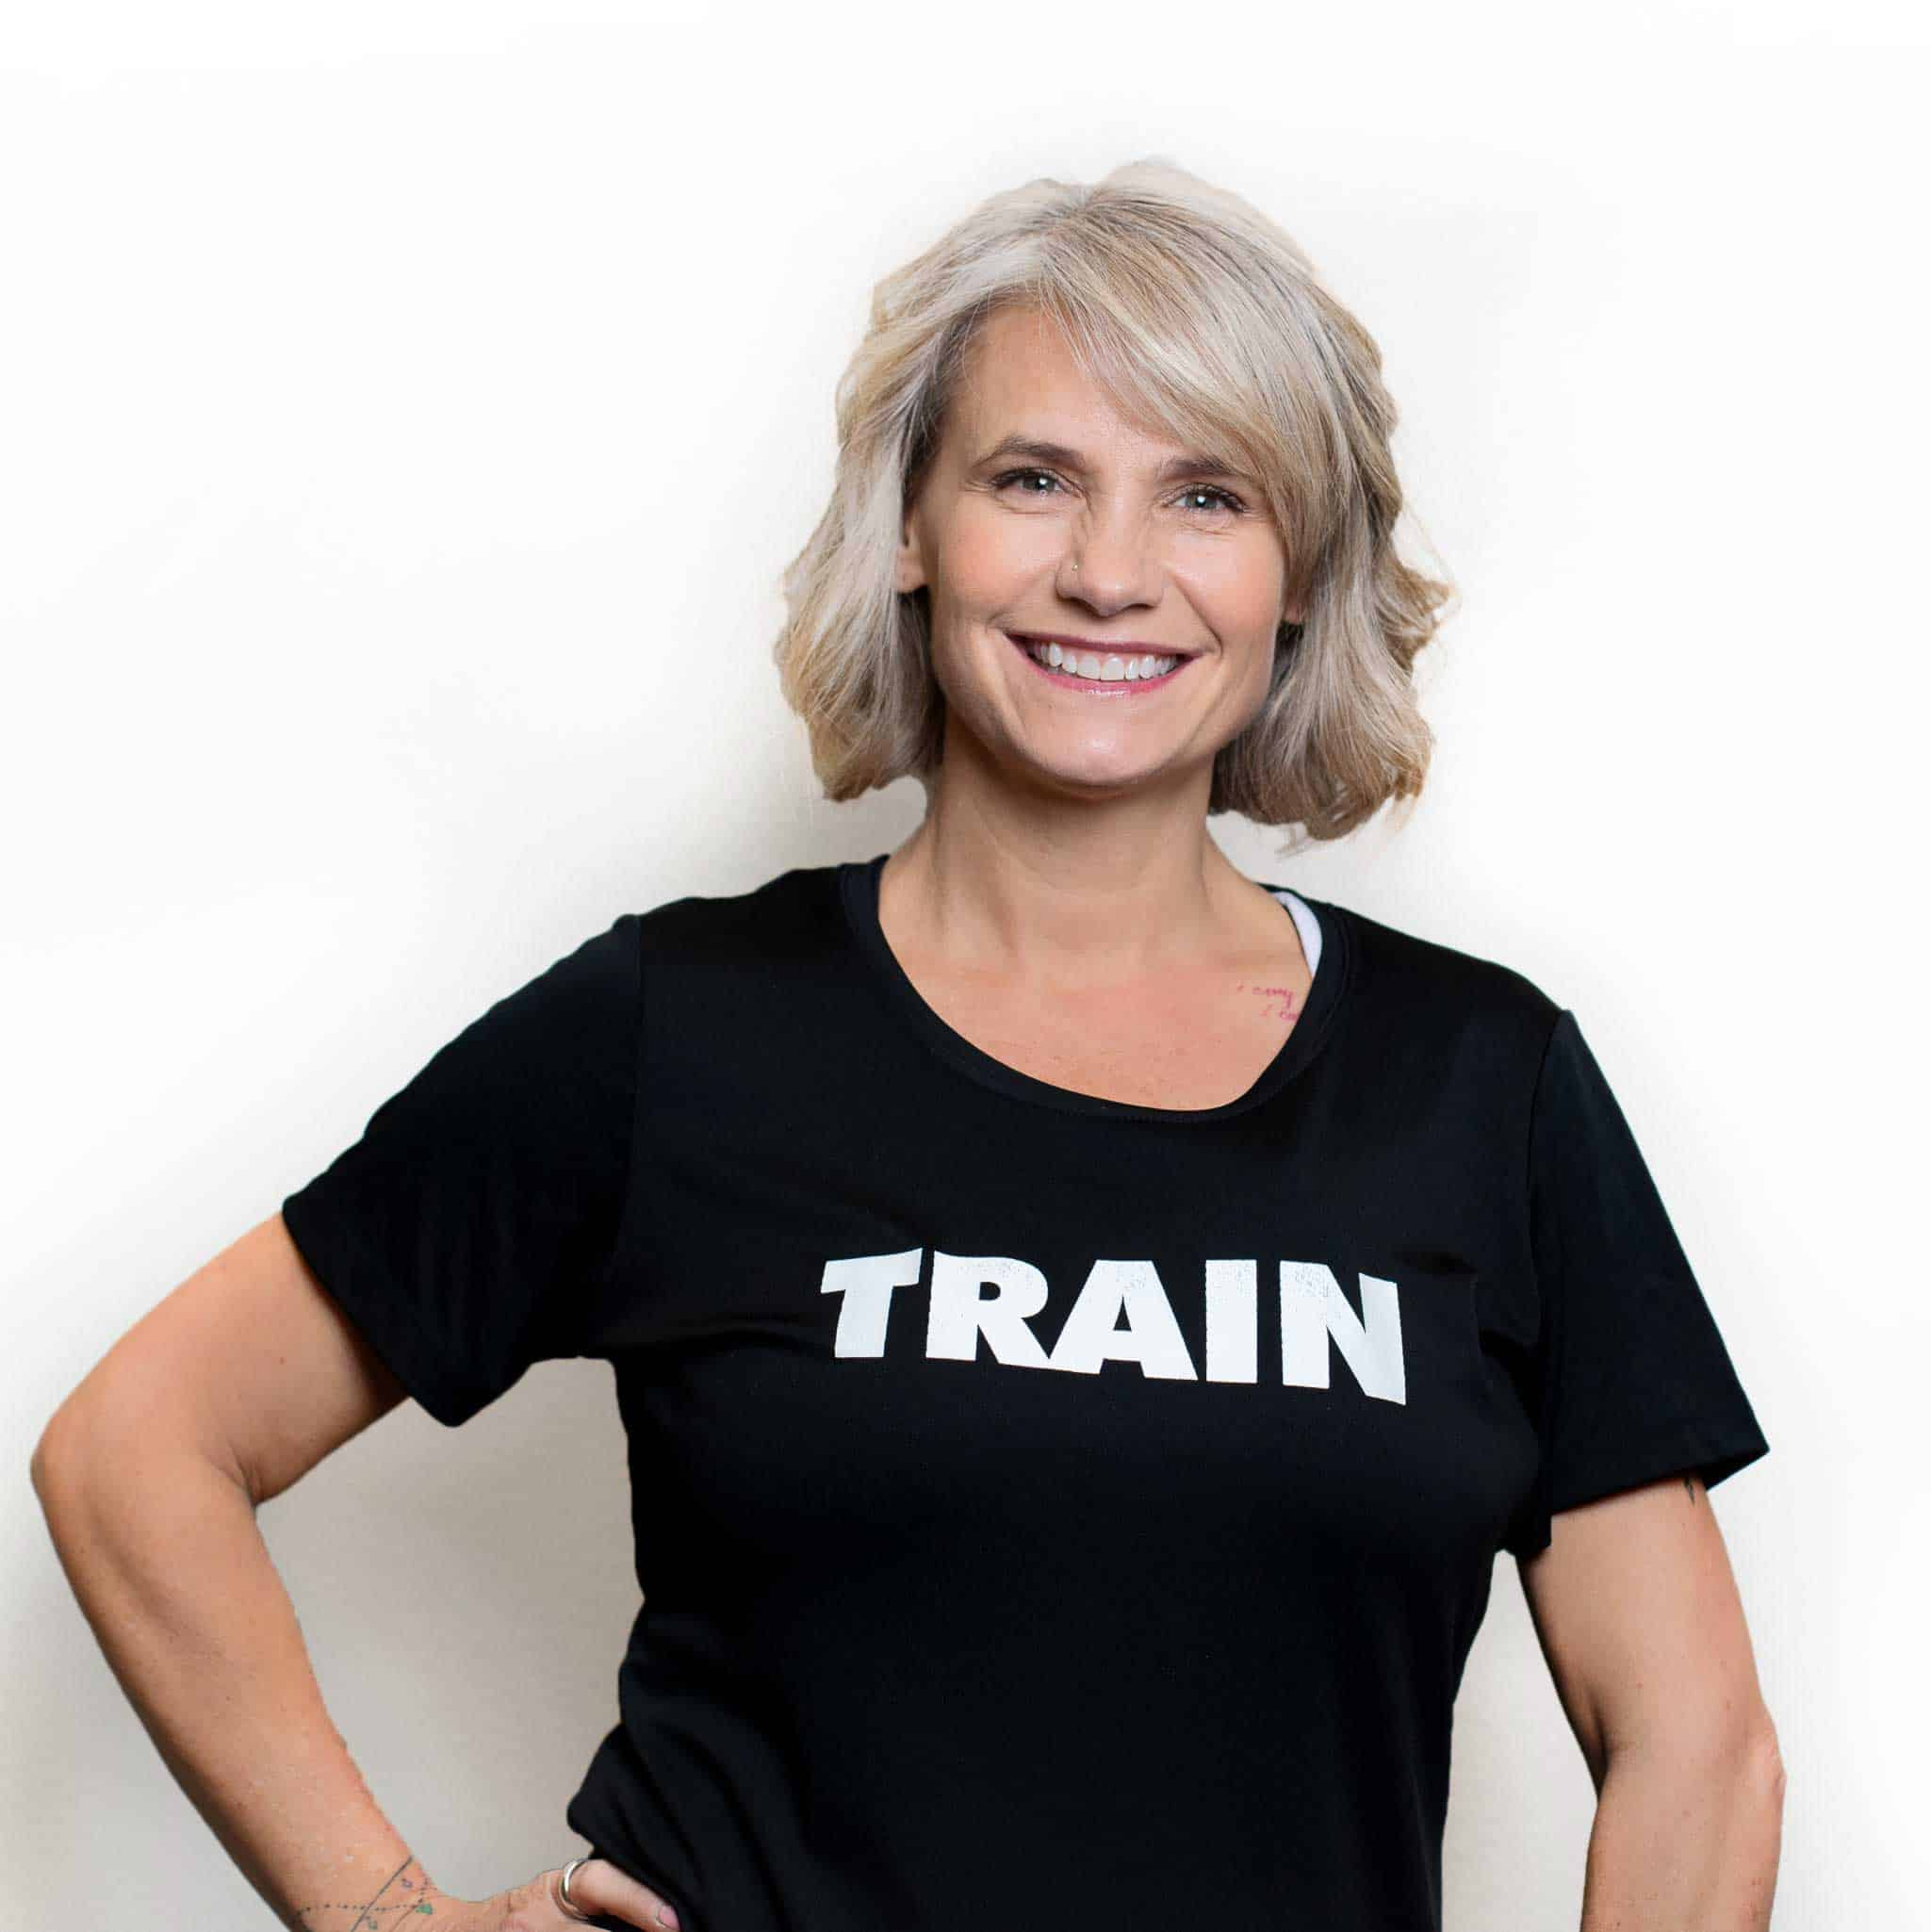 Nationally Certified Personal Trainer NCCPT CPT